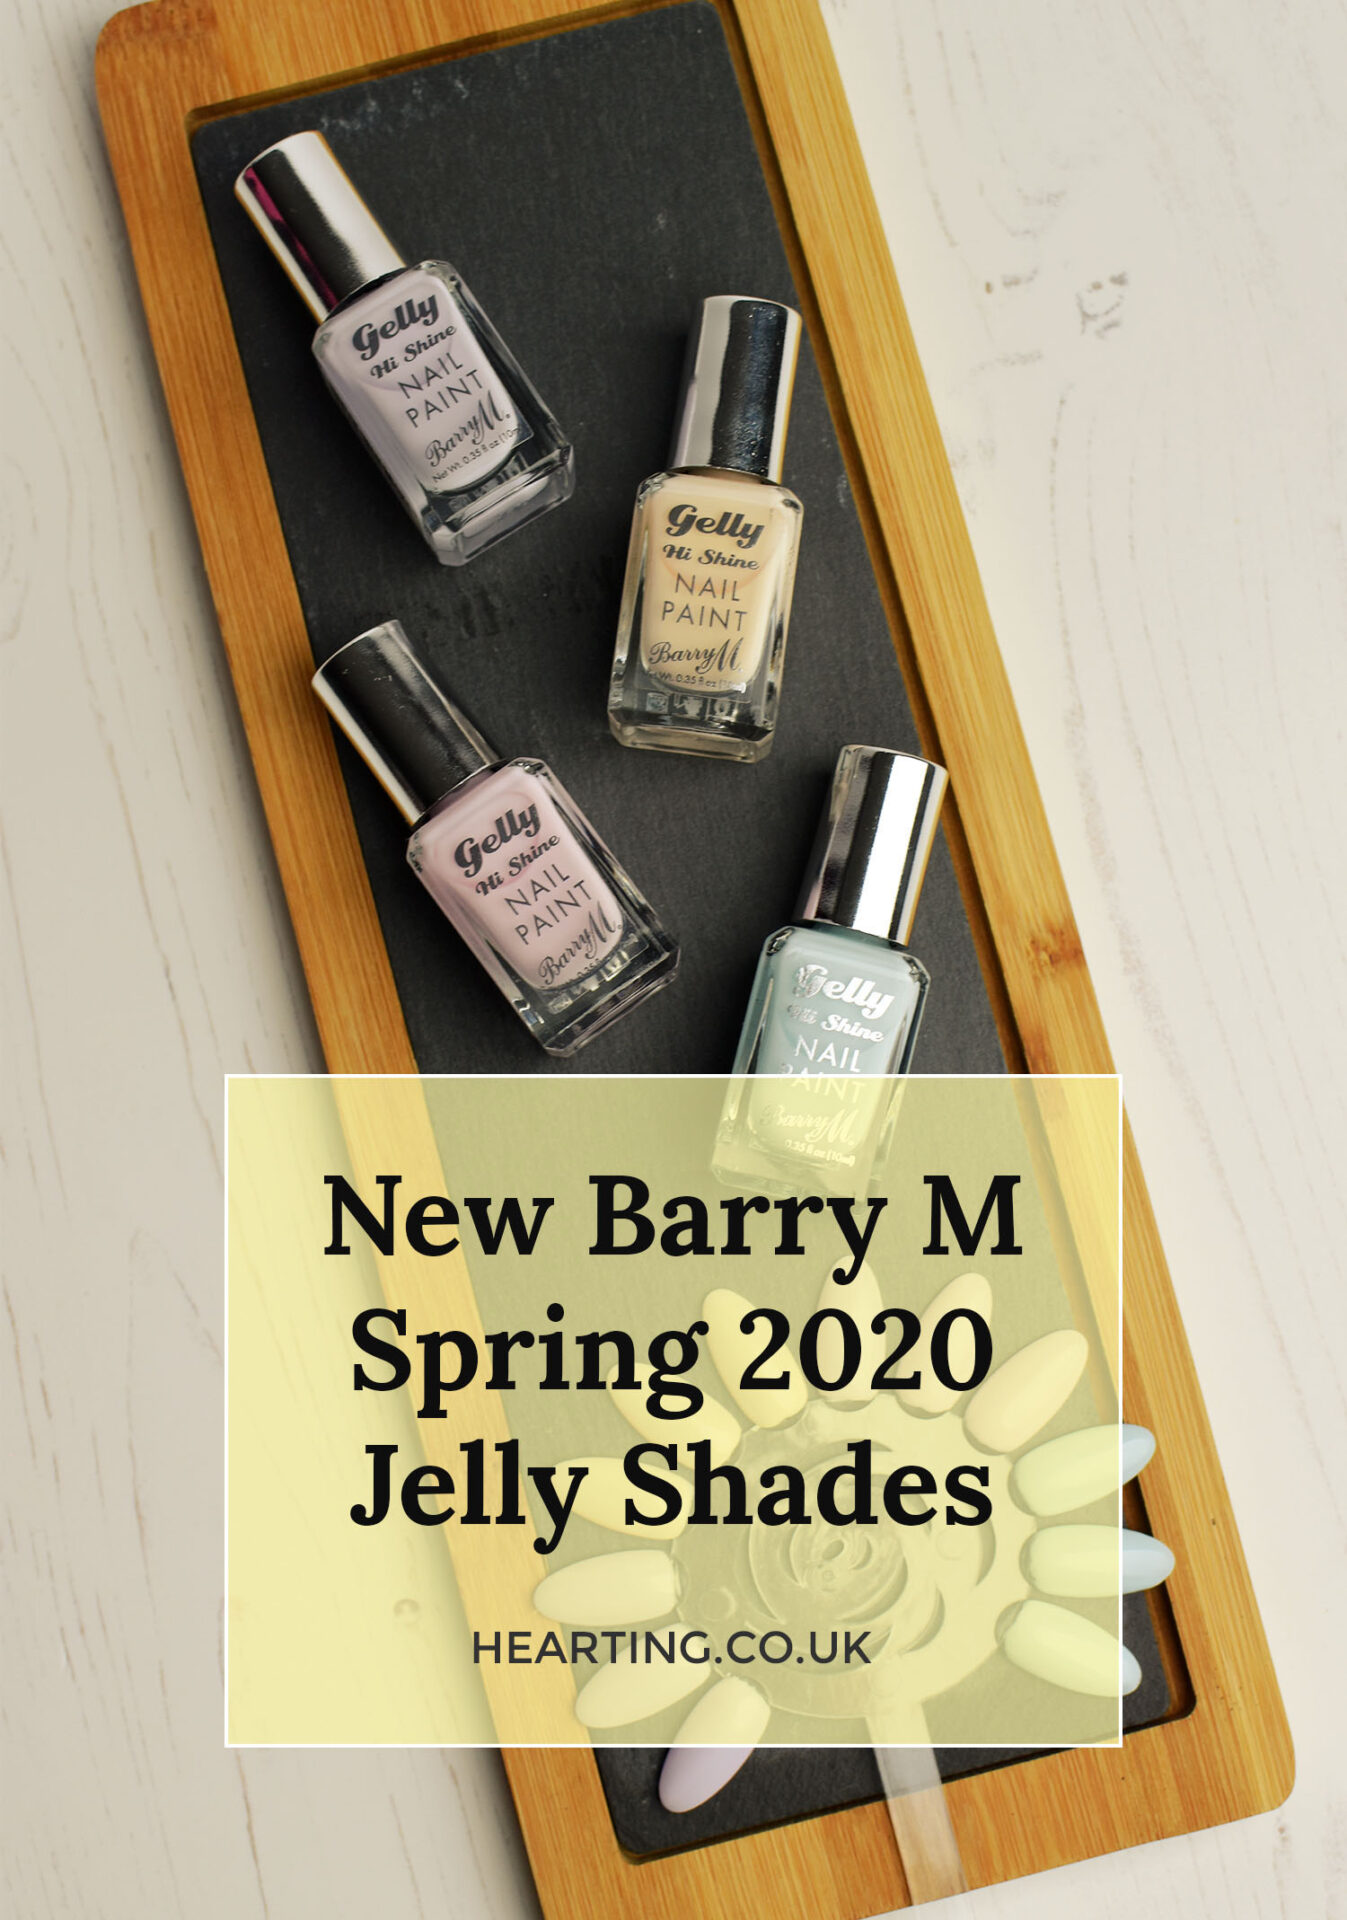 Barry M Gelly Spring Shades 2020 | Swatches of Lavender, Iced Latte, Candy Floss and Berry Sorbet